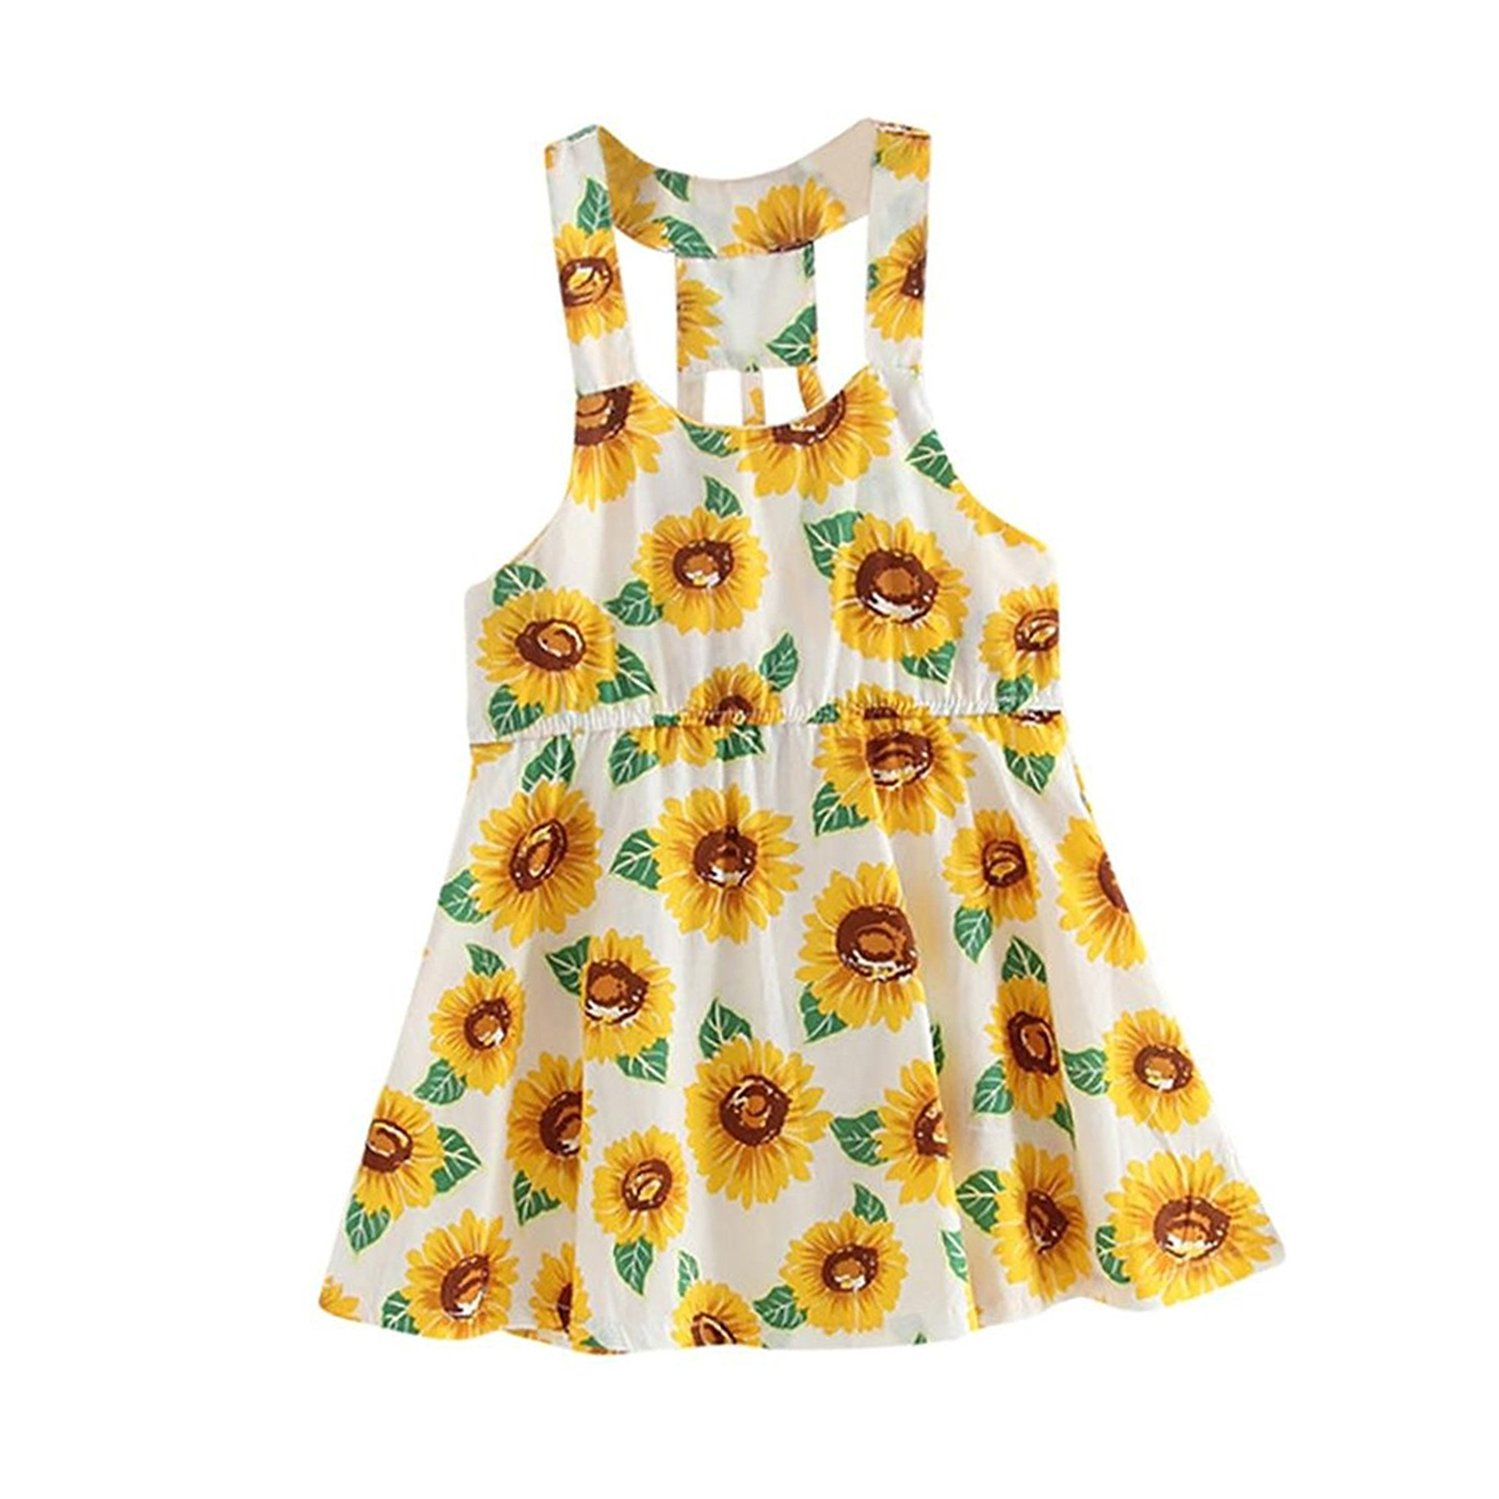 568ac04b1 Cotton blend. Soft and not irritating to baby's skin. Pattern type:  sunflower print; Sleeve length: Sleeveless Silhouette: A-Line and backless